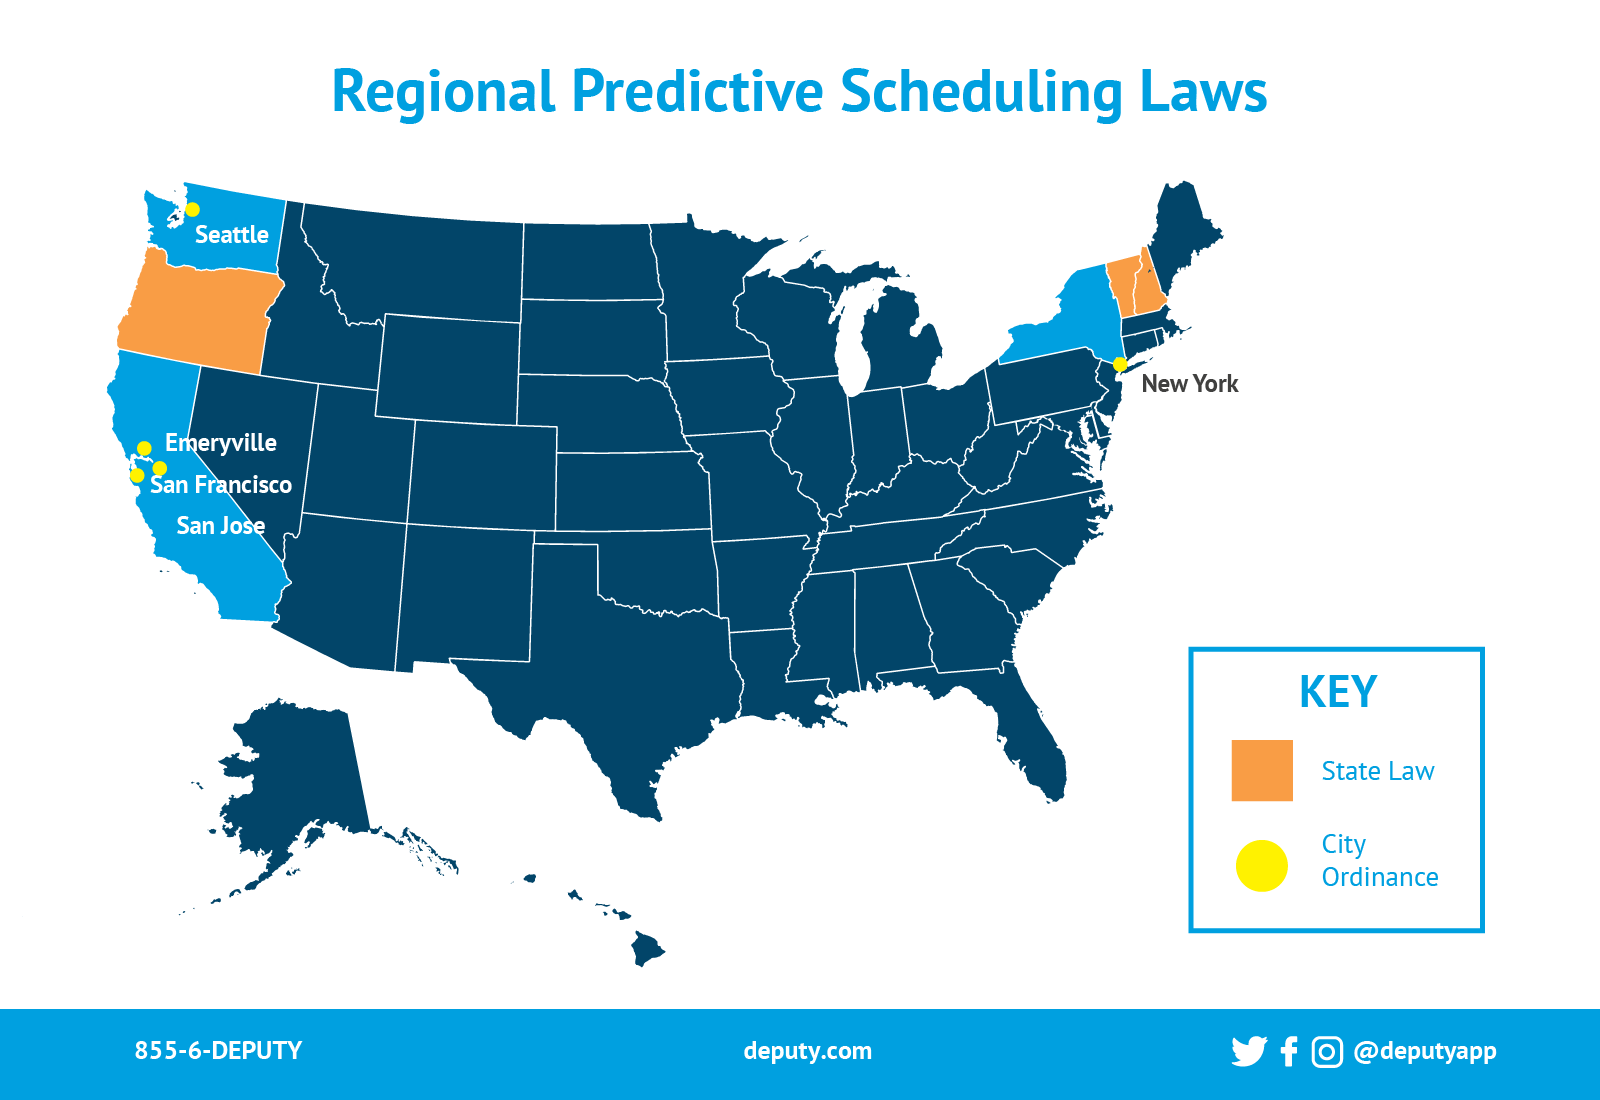 California's-predictive-scheduling-regions